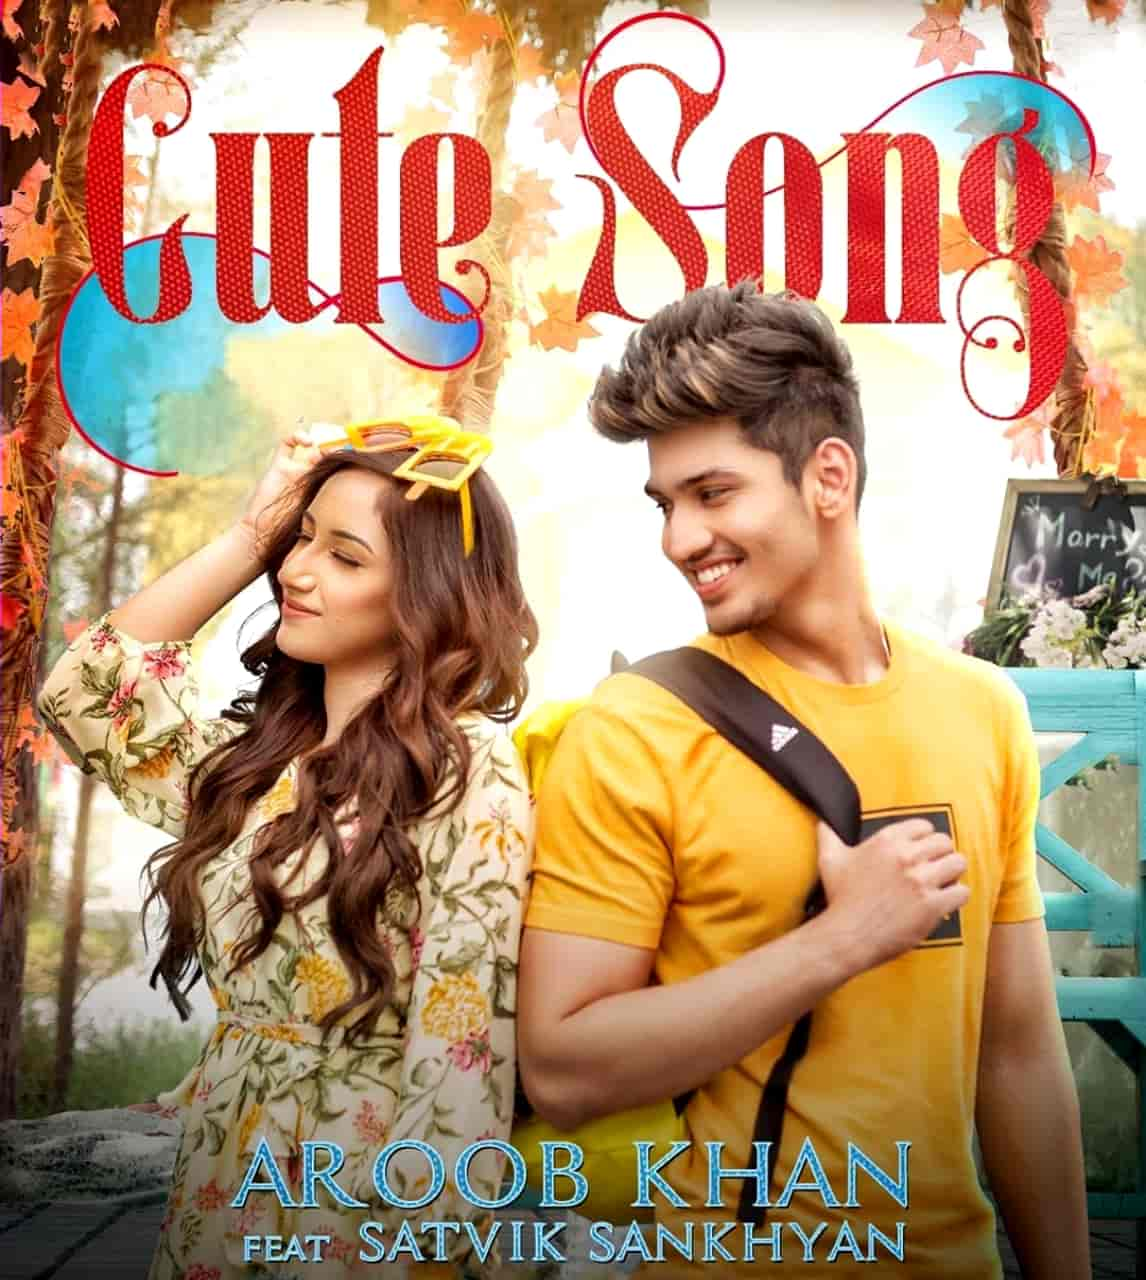 Cute Song Image By Aroob Khan